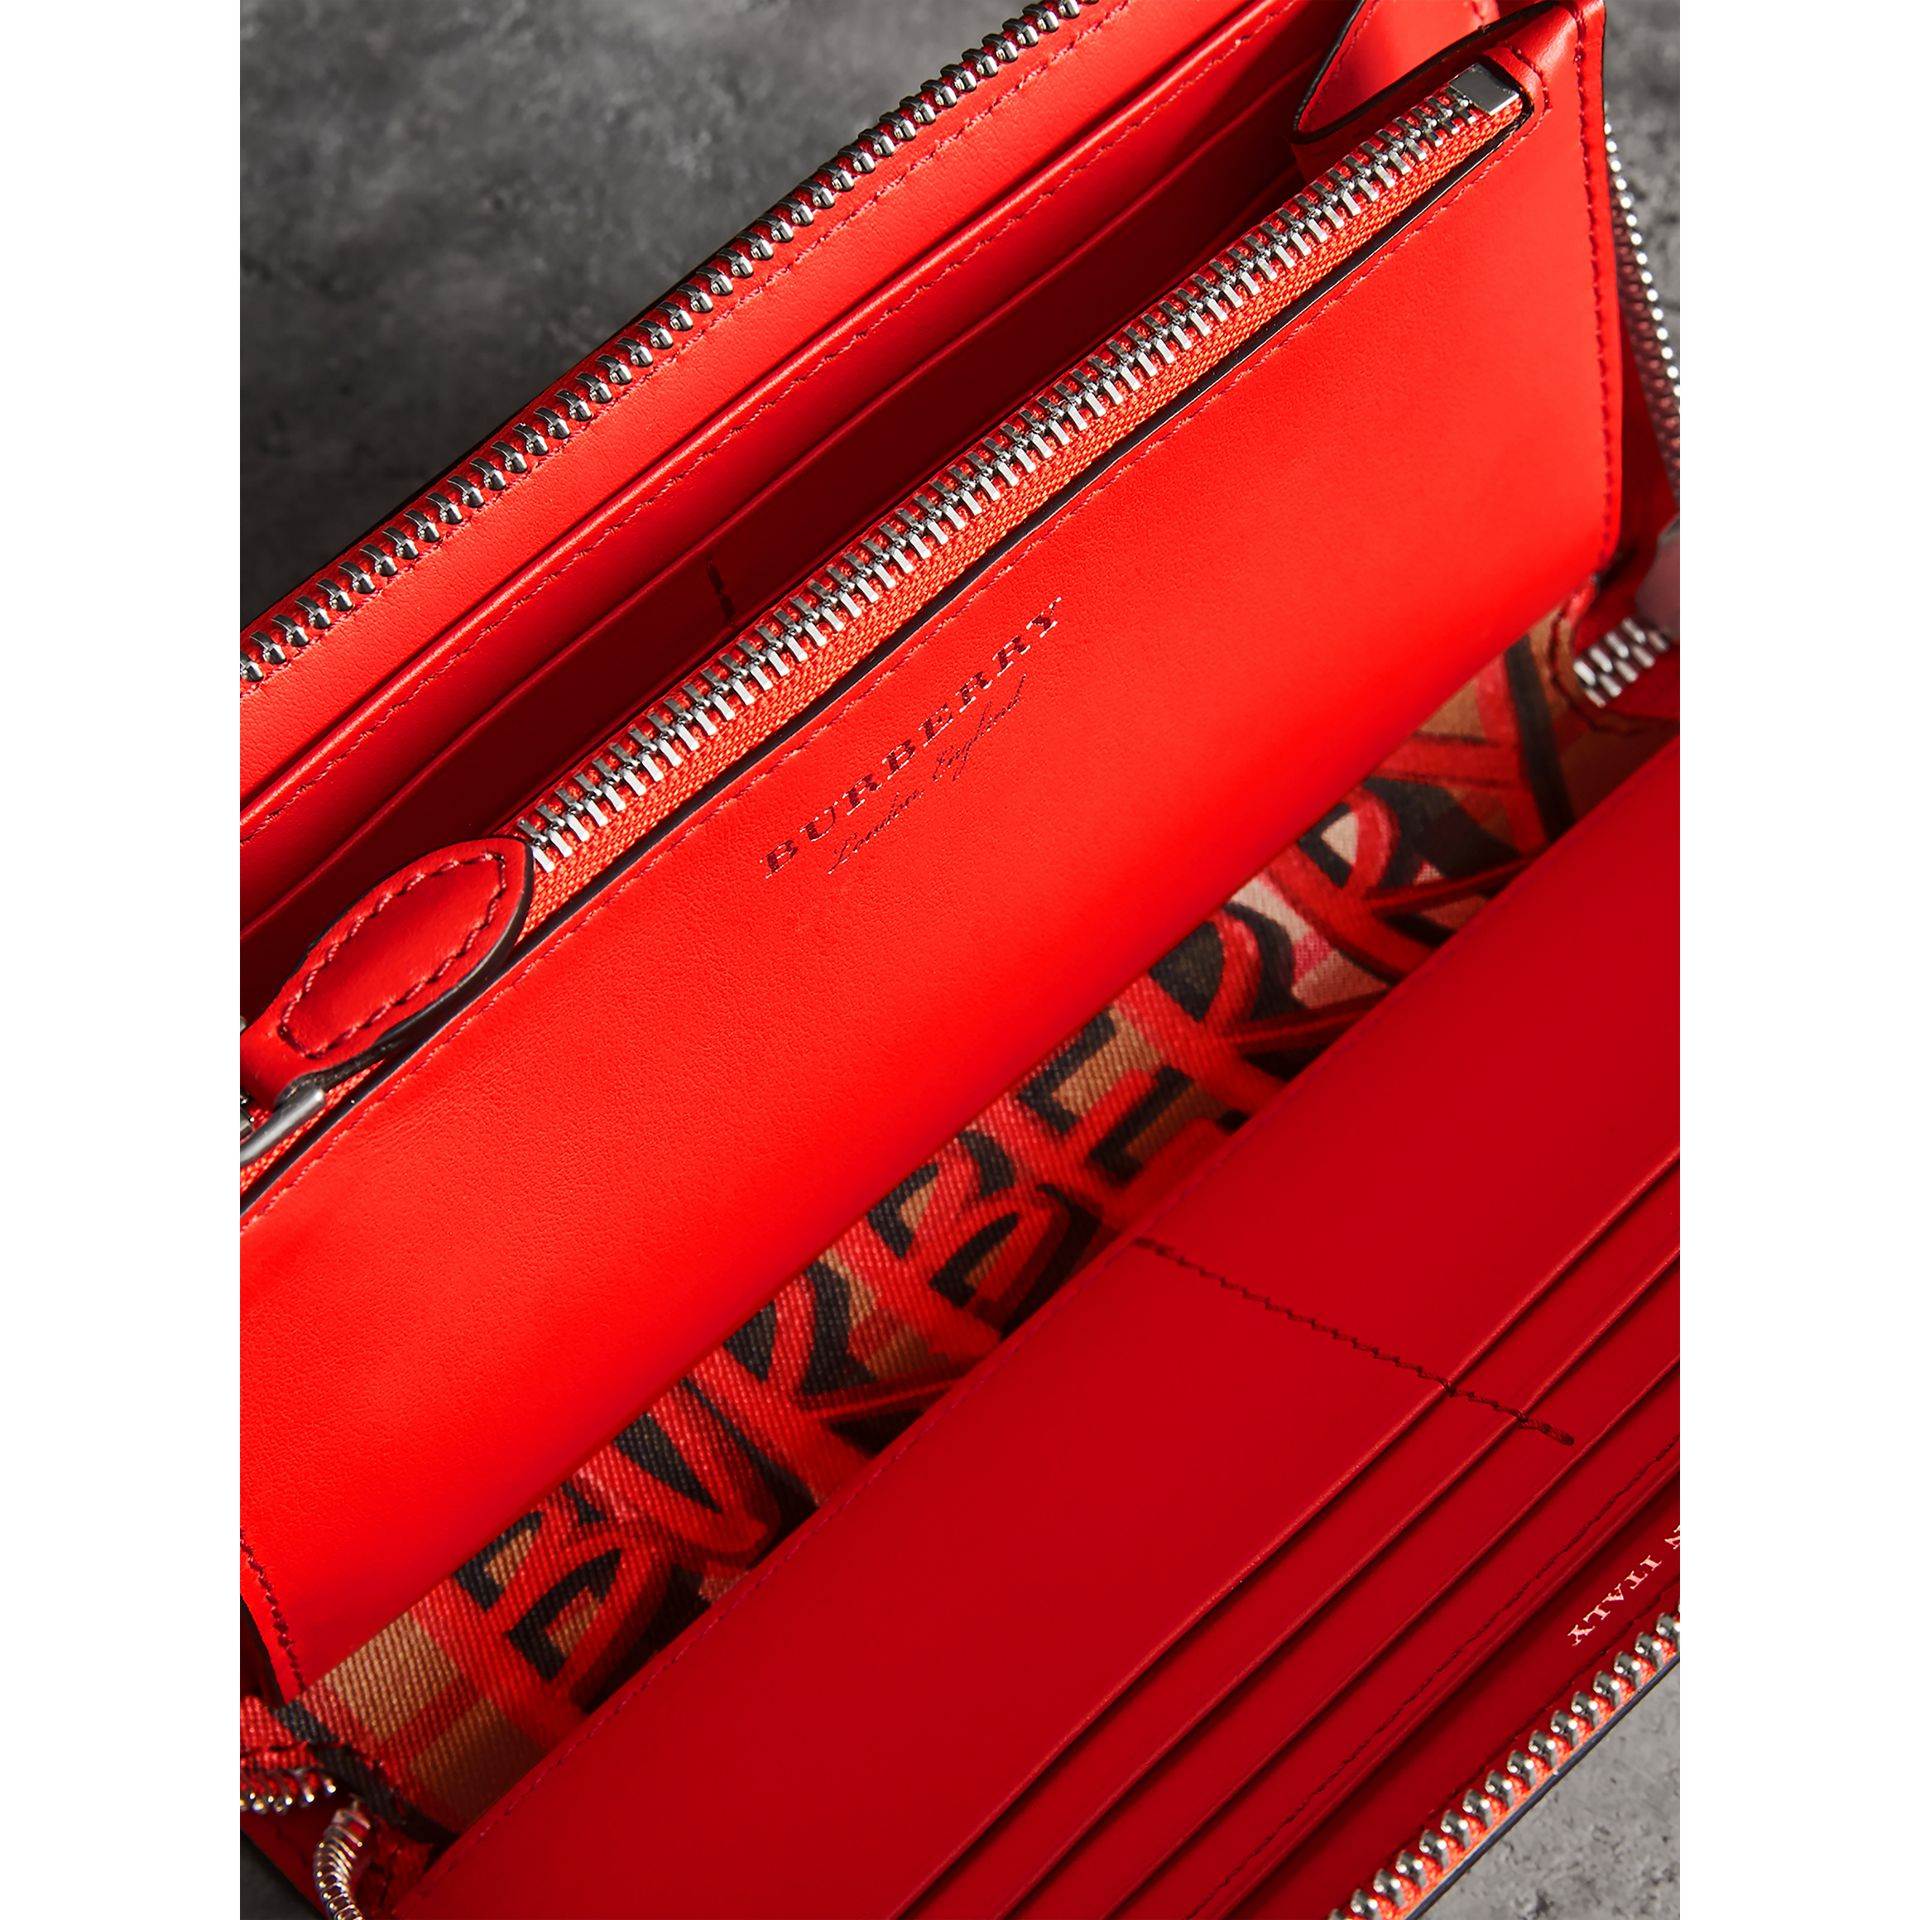 Graffiti Print Vintage Check Leather Ziparound Wallet in Red - Women | Burberry United States - gallery image 3